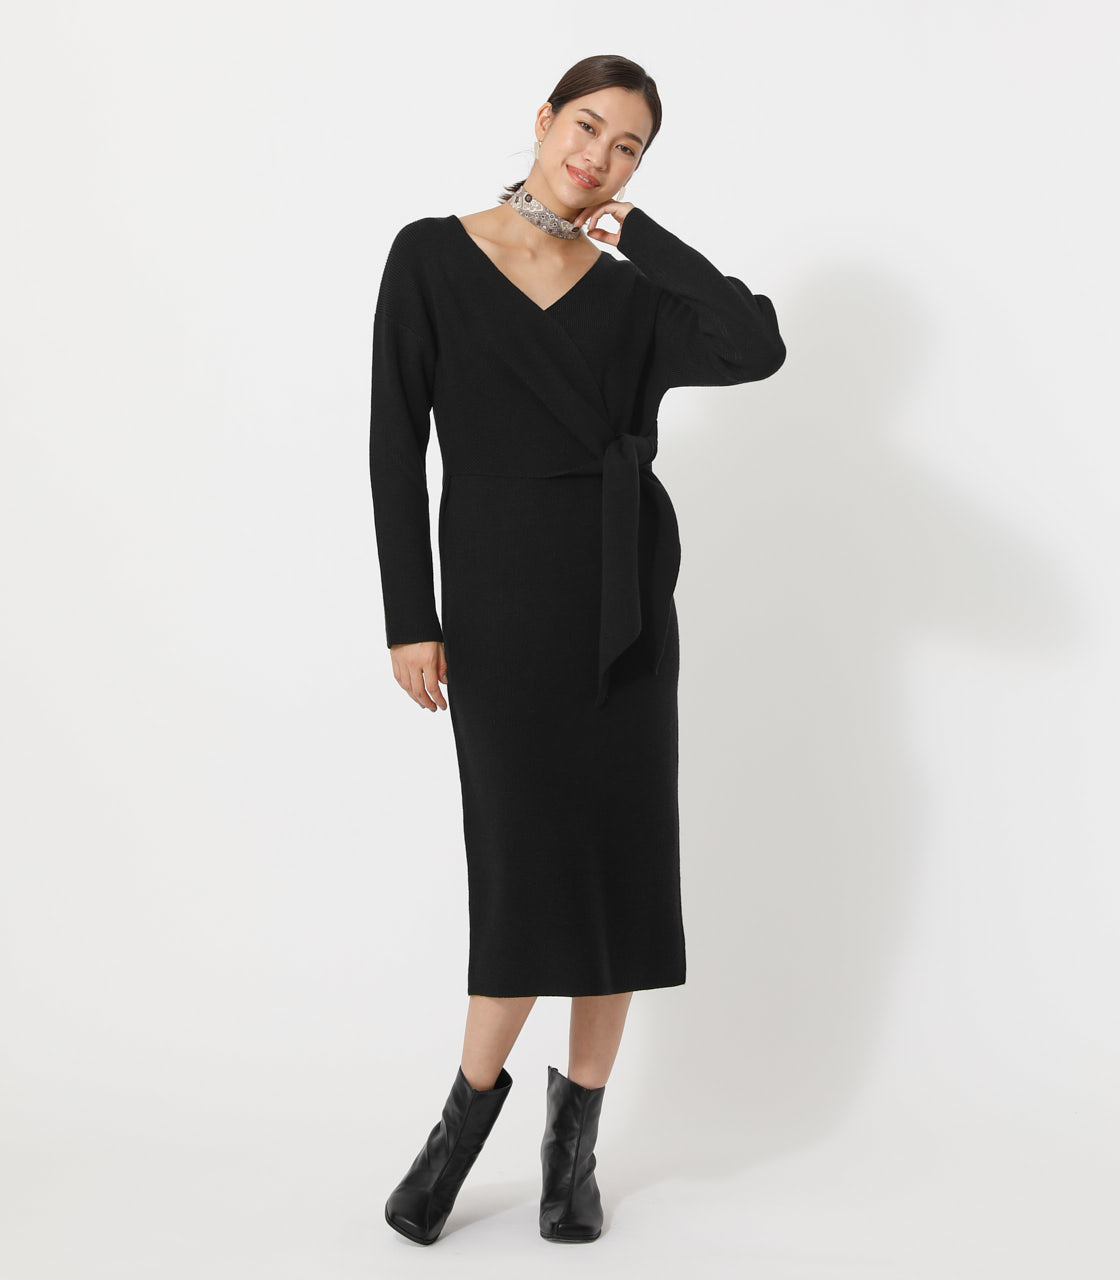 FRONT LINK KNIT ONEPIECE/フロントリンクニットワンピース 詳細画像 BLK 1